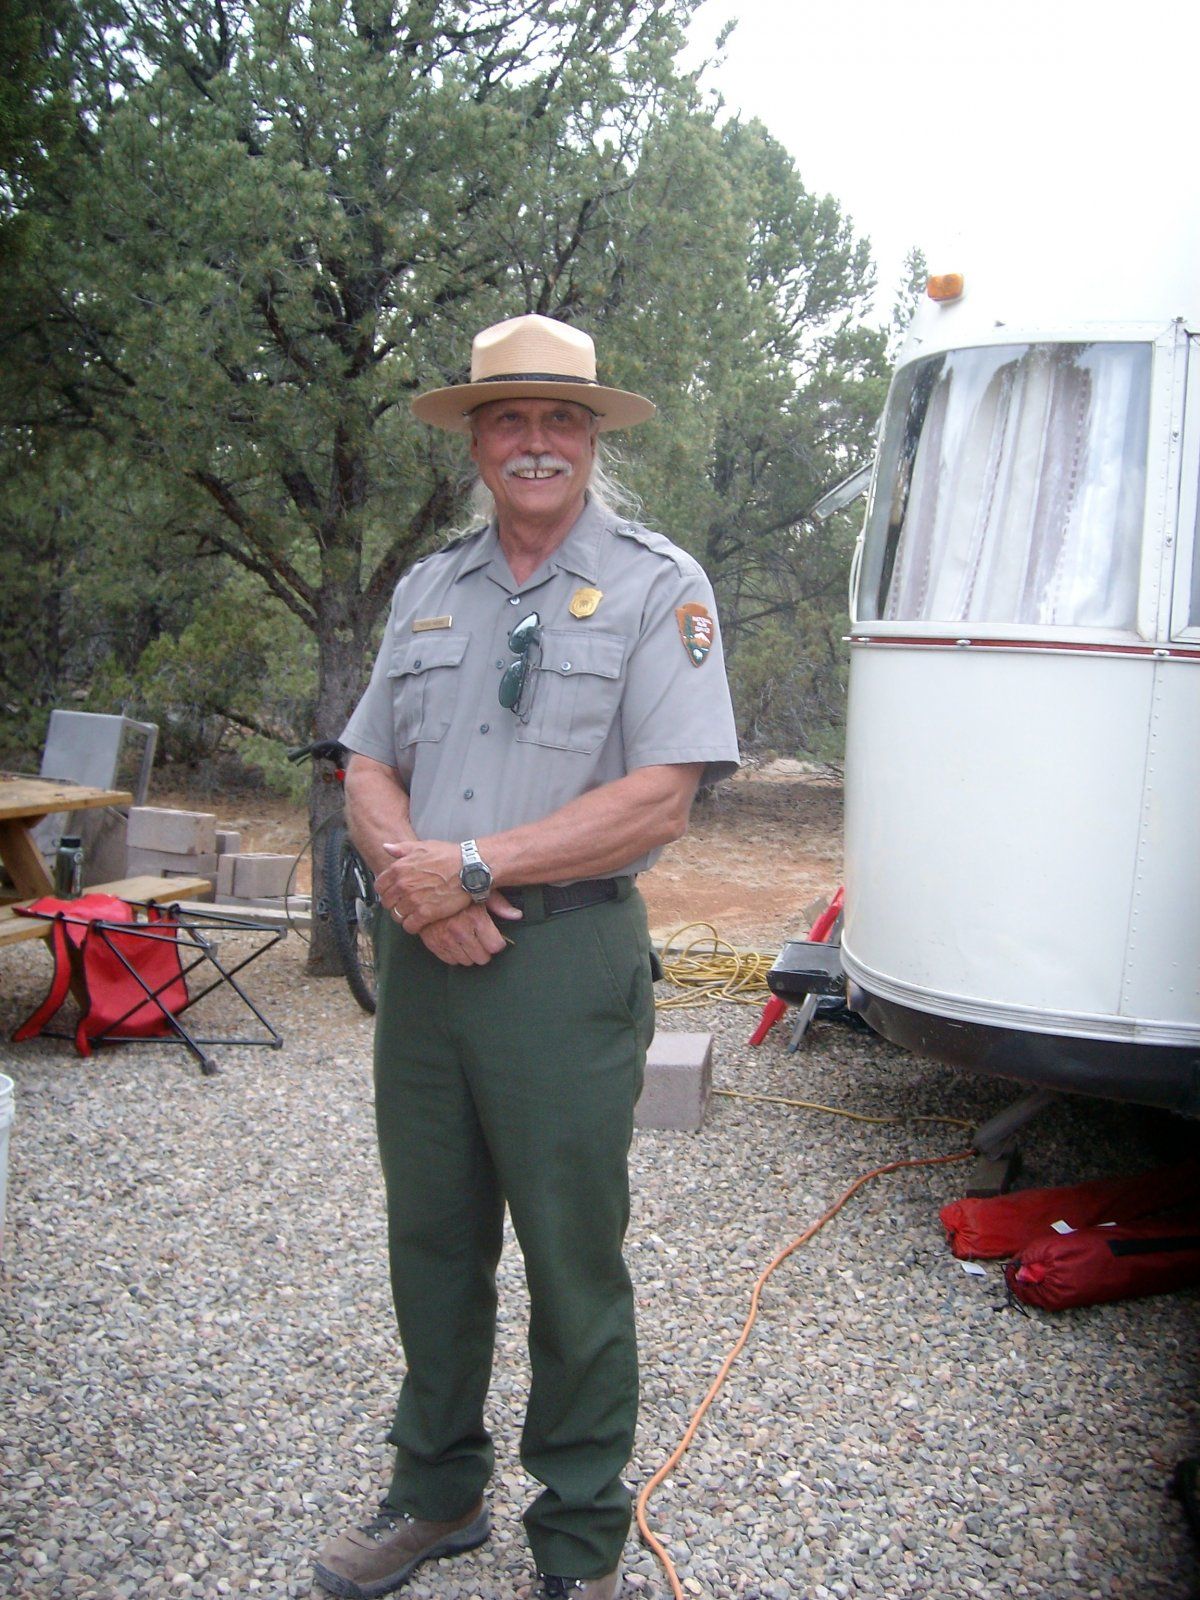 Click image for larger version  Name:Ranger Pete.jpg Views:89 Size:400.1 KB ID:134329